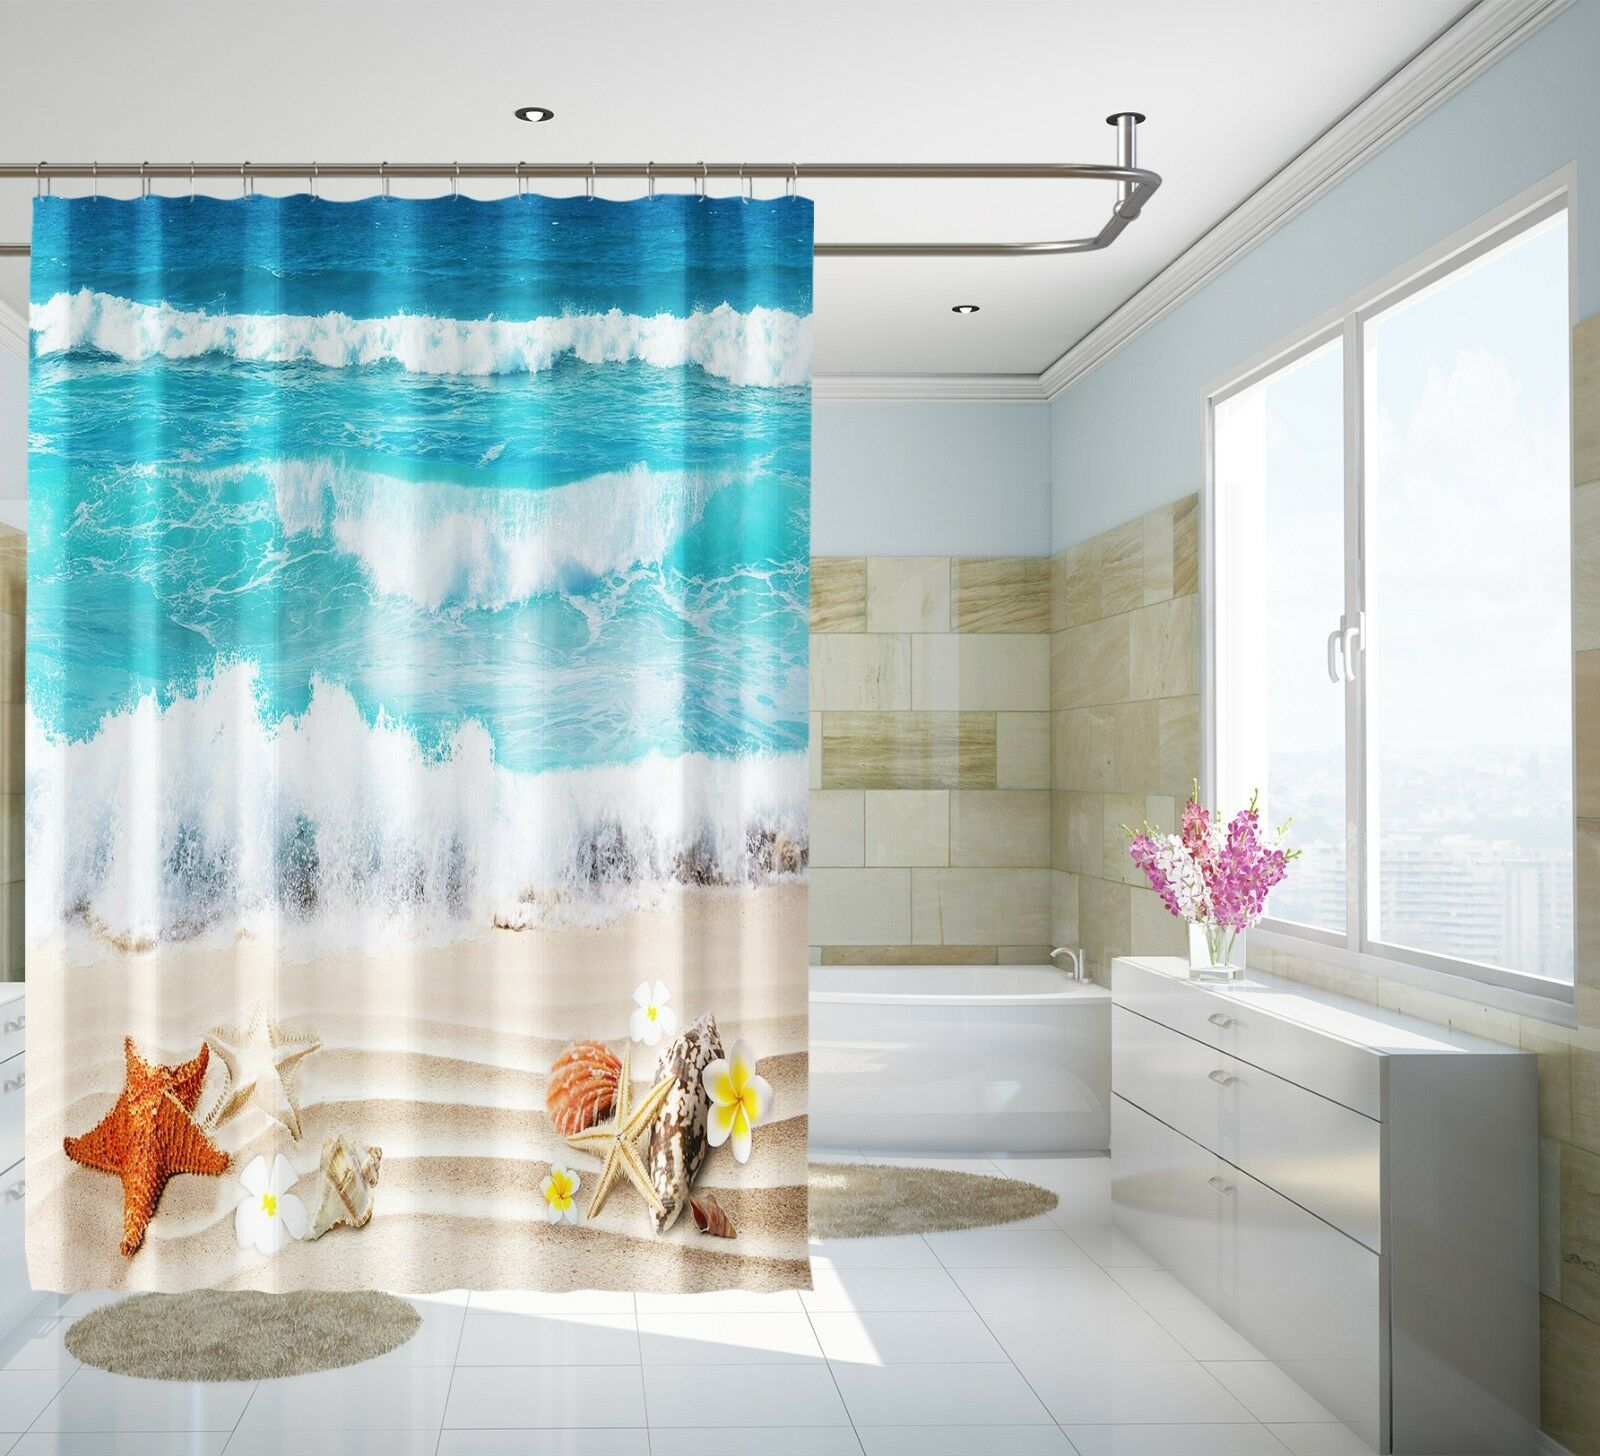 3D Beach Scenery 14 Shower Shower Shower Curtain Waterproof Fiber Bathroom Home Windows Toilet 7db831